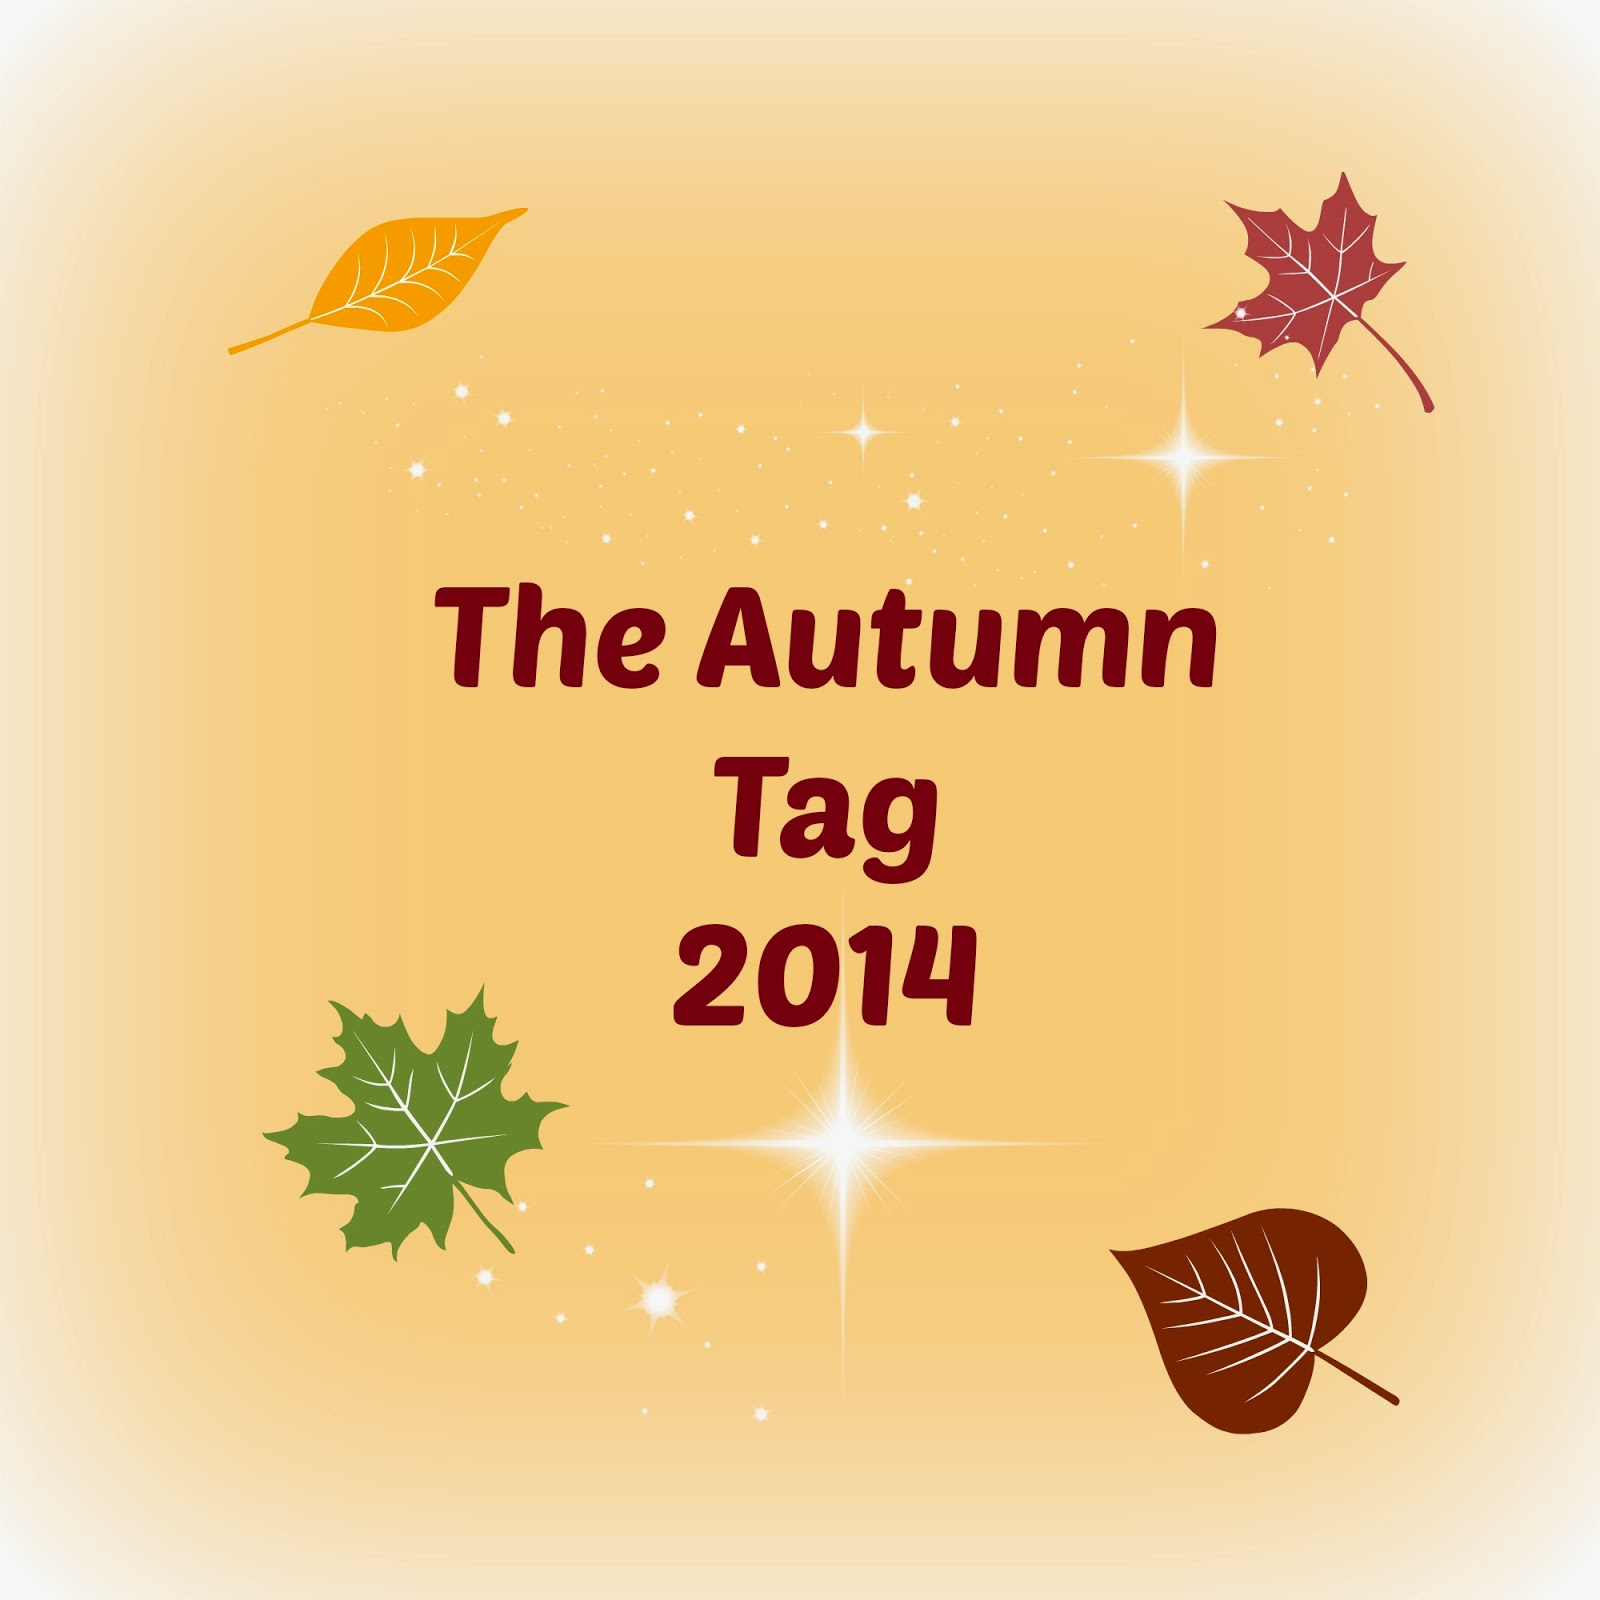 autumn tag 2014